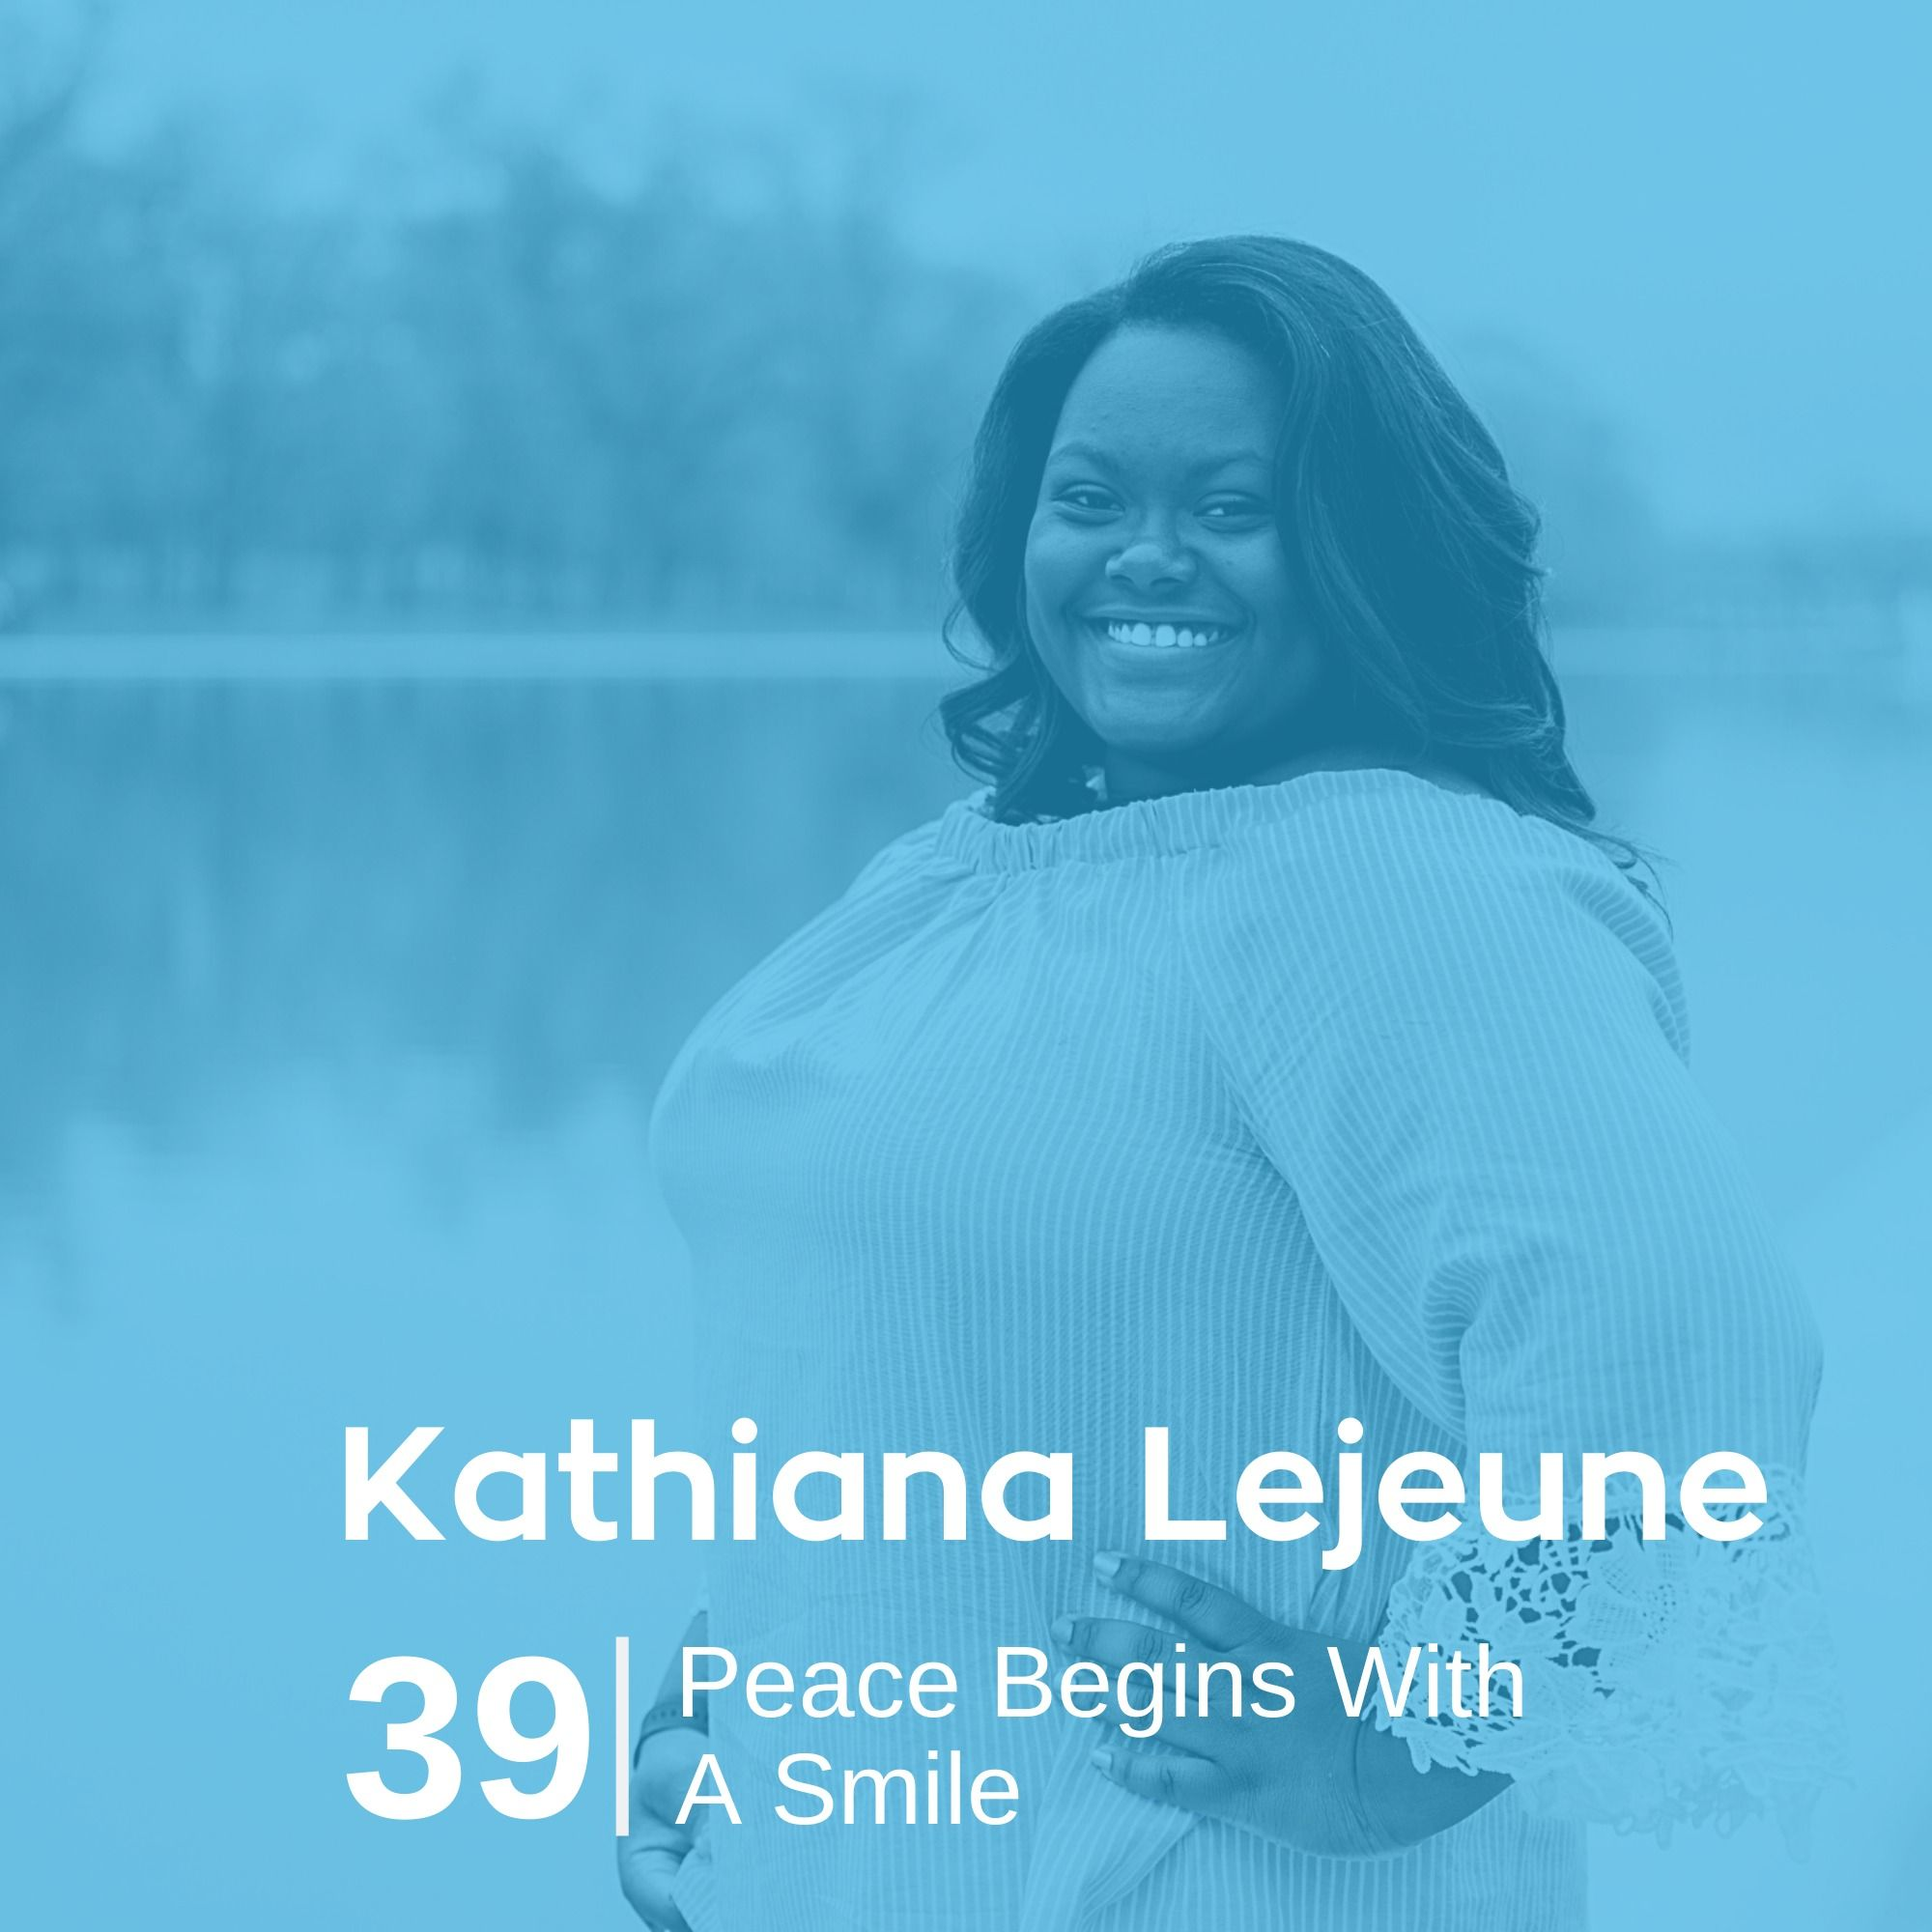 Ep 39. Kathiana Lejeune - Peace Begins With a Smile